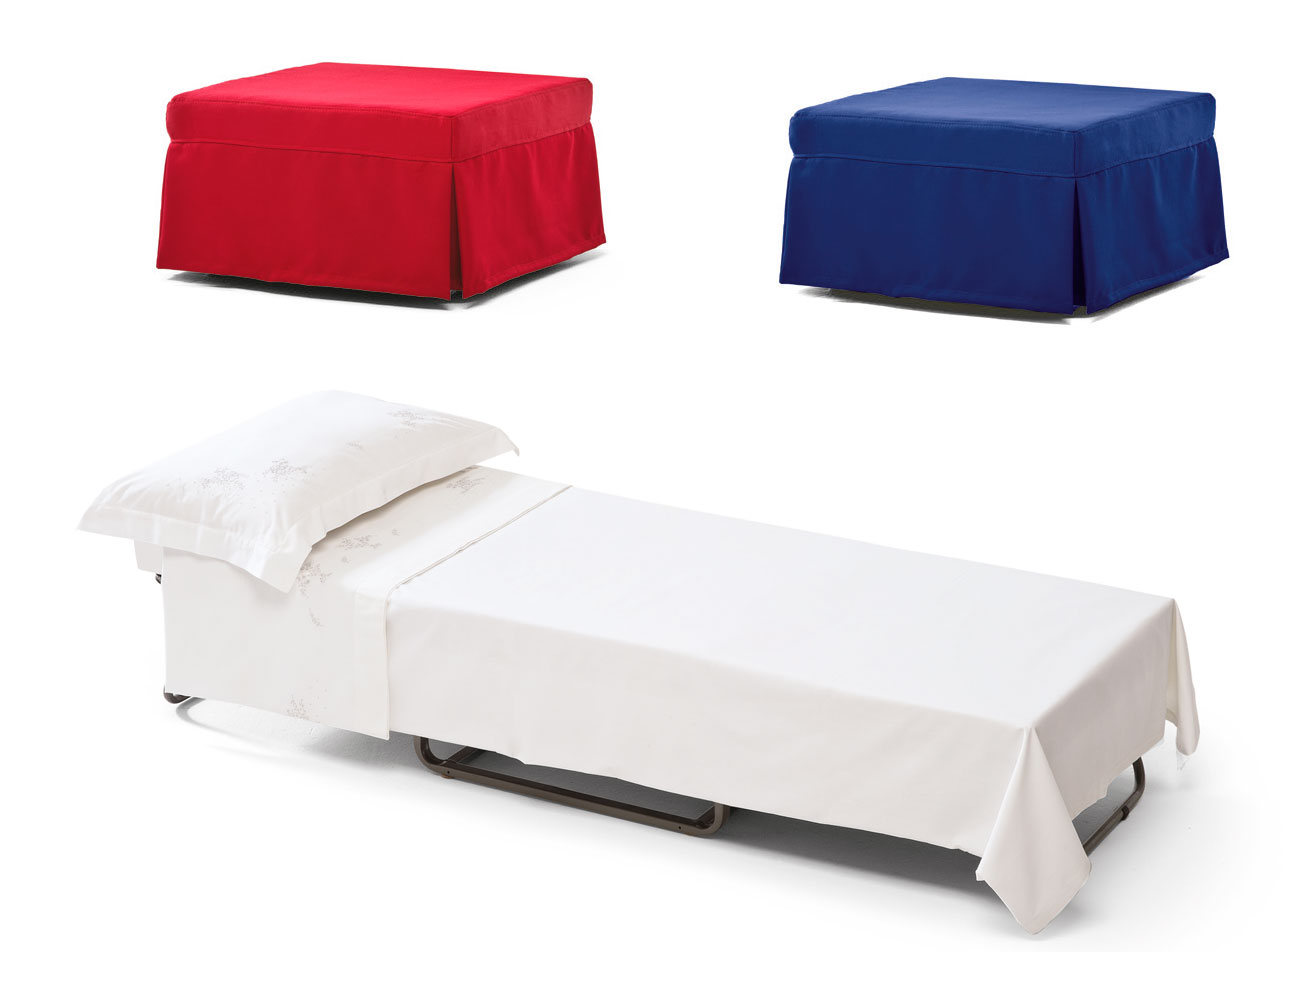 Sofa cama convertible puf1